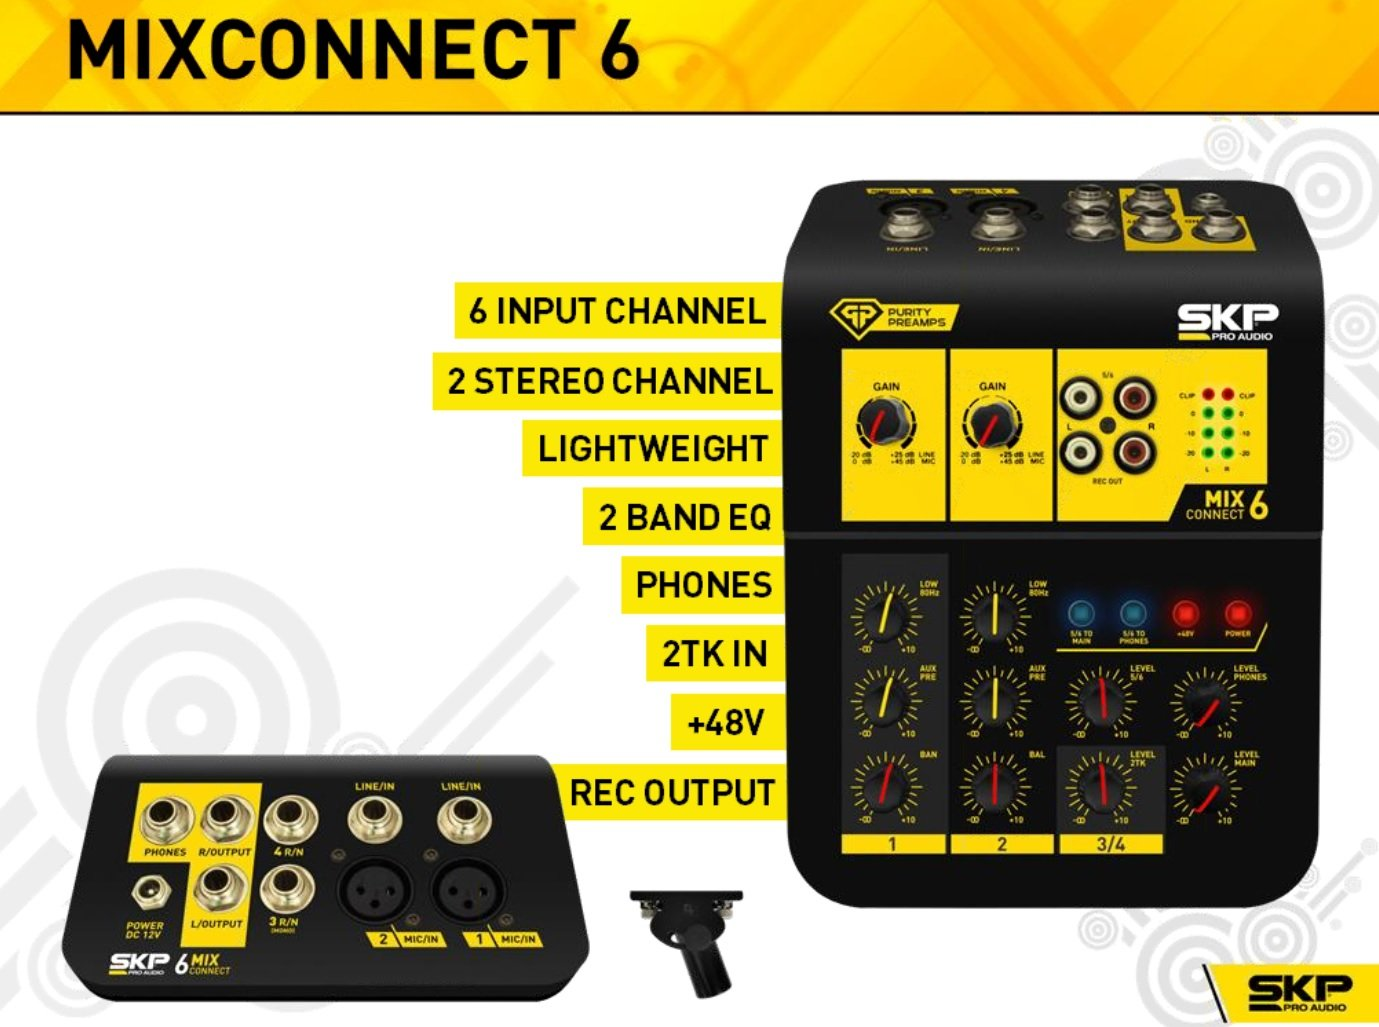 SKP Pro Audio MIX CONNECT 6 Portable Mixing Console with 6 Input Channels by SKP Pro Audio